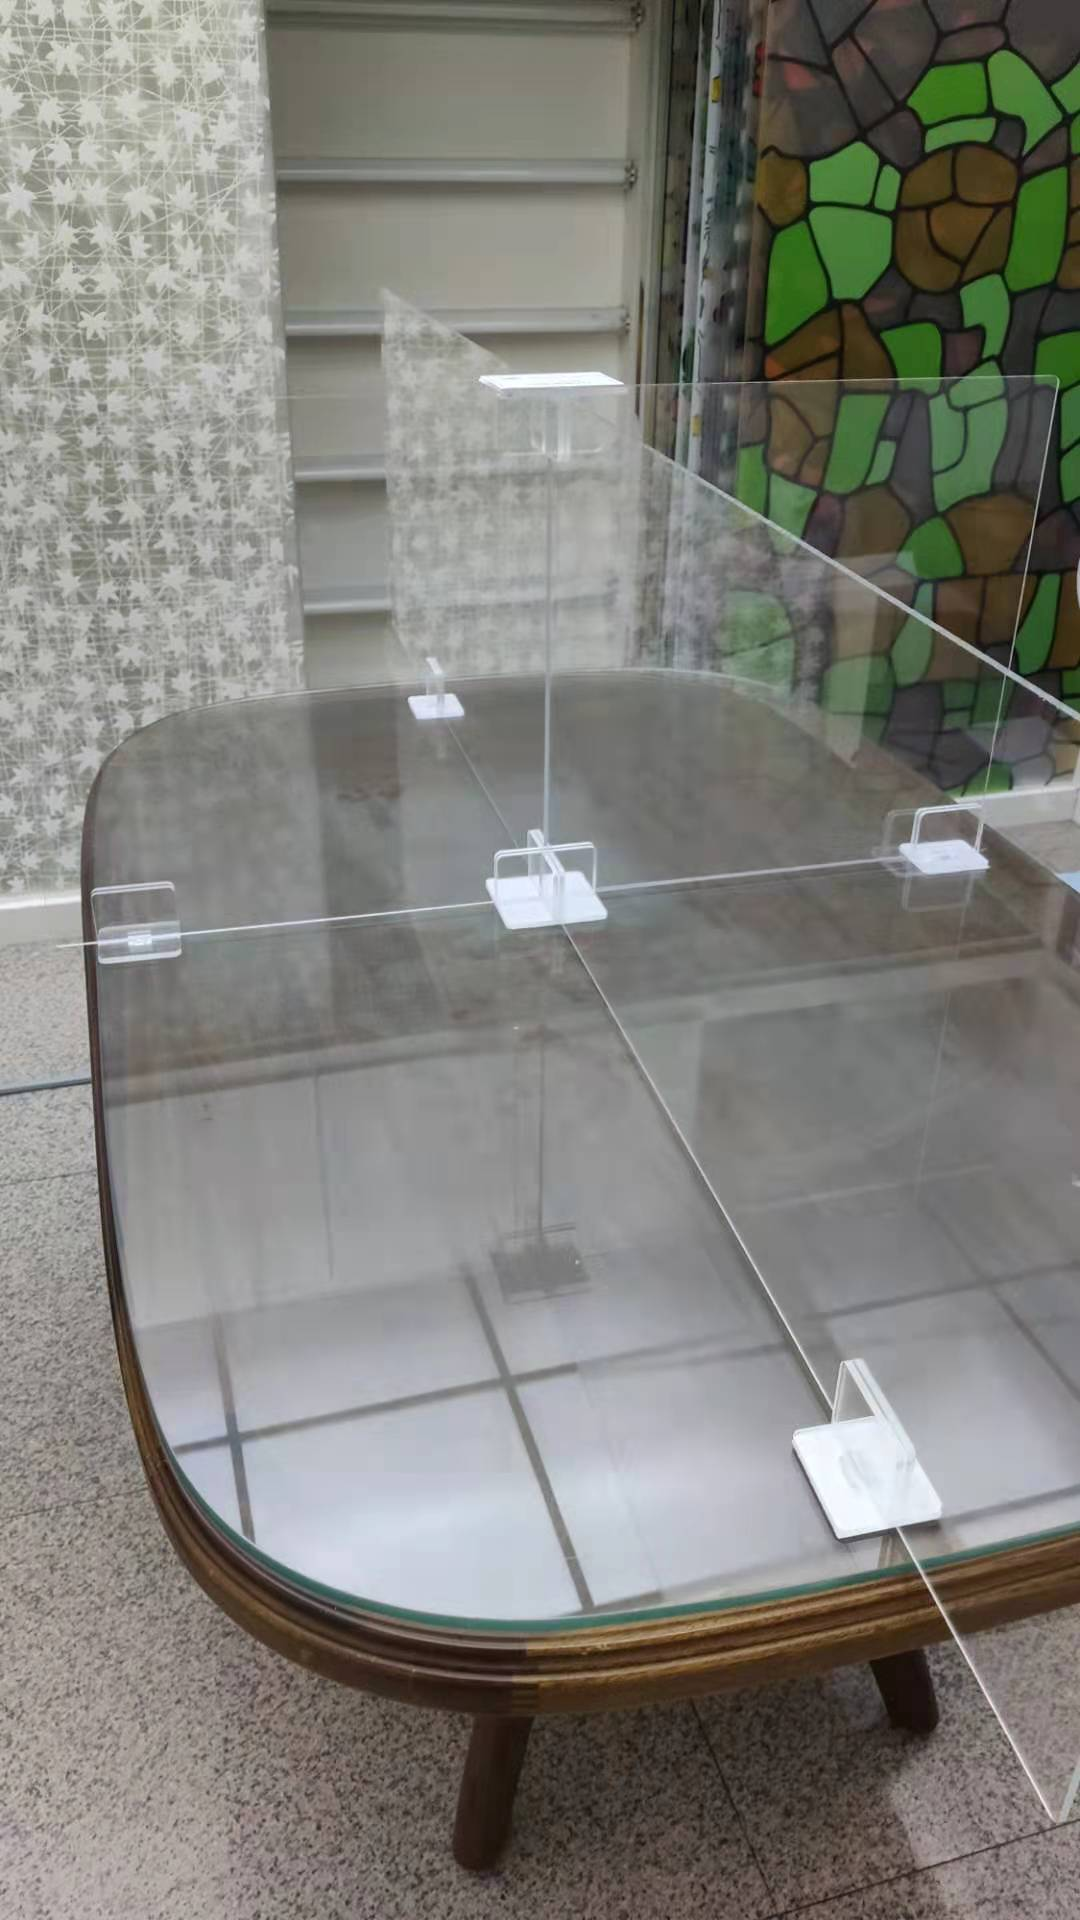 plastic protective barrier